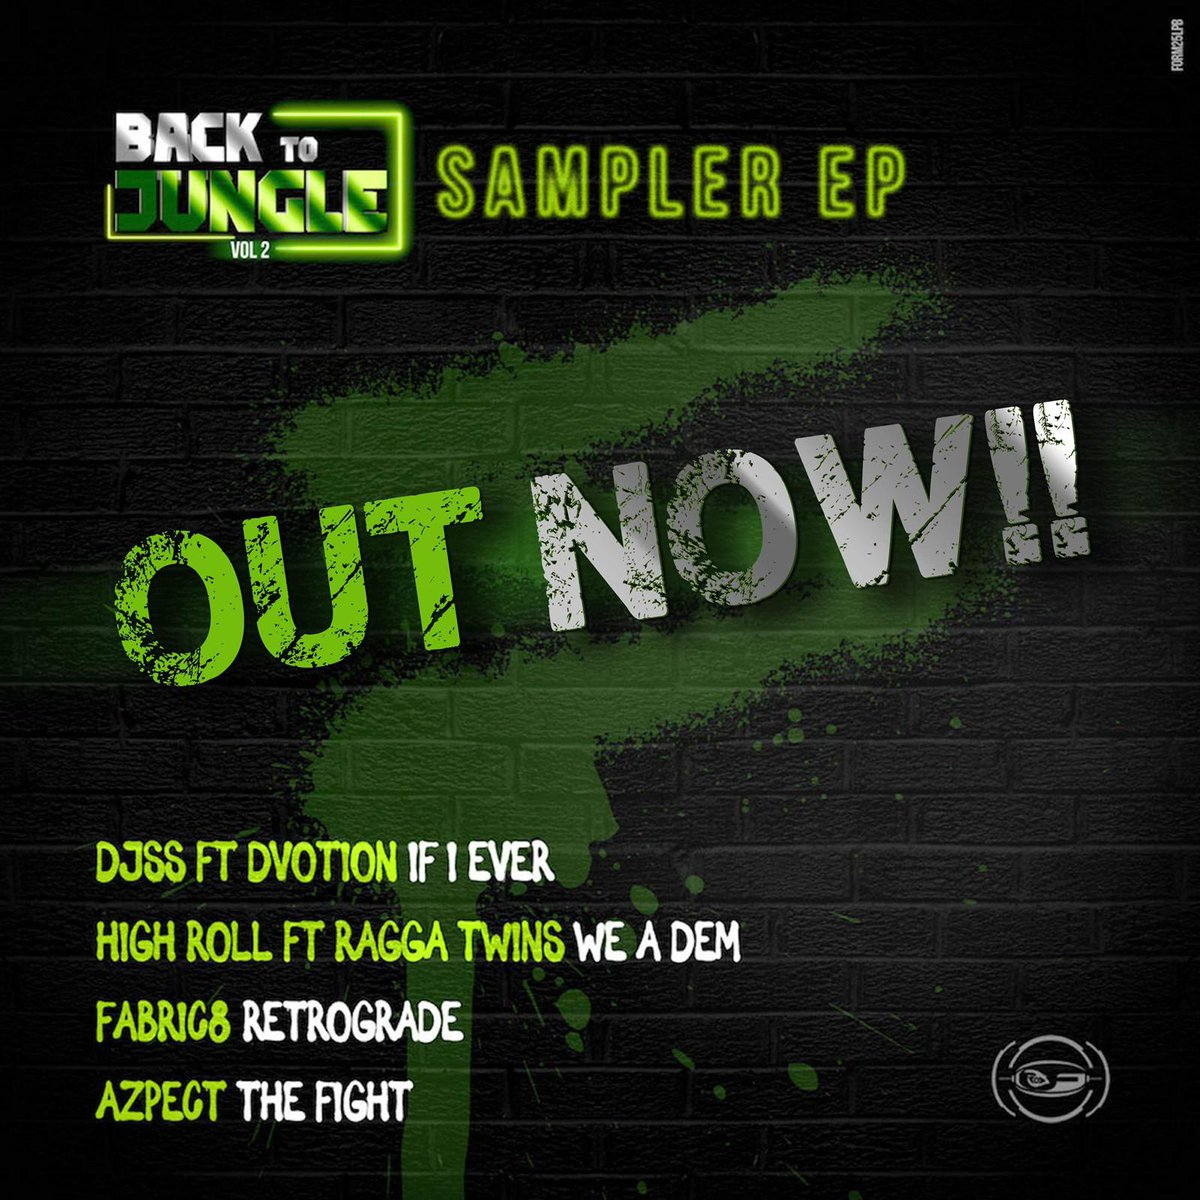 djss ft Dvotion - If I ever 🌴  Part of the Back to Jungle Vol 2 EP (Sampler)  Stream and Download here >   #dnb #jungle